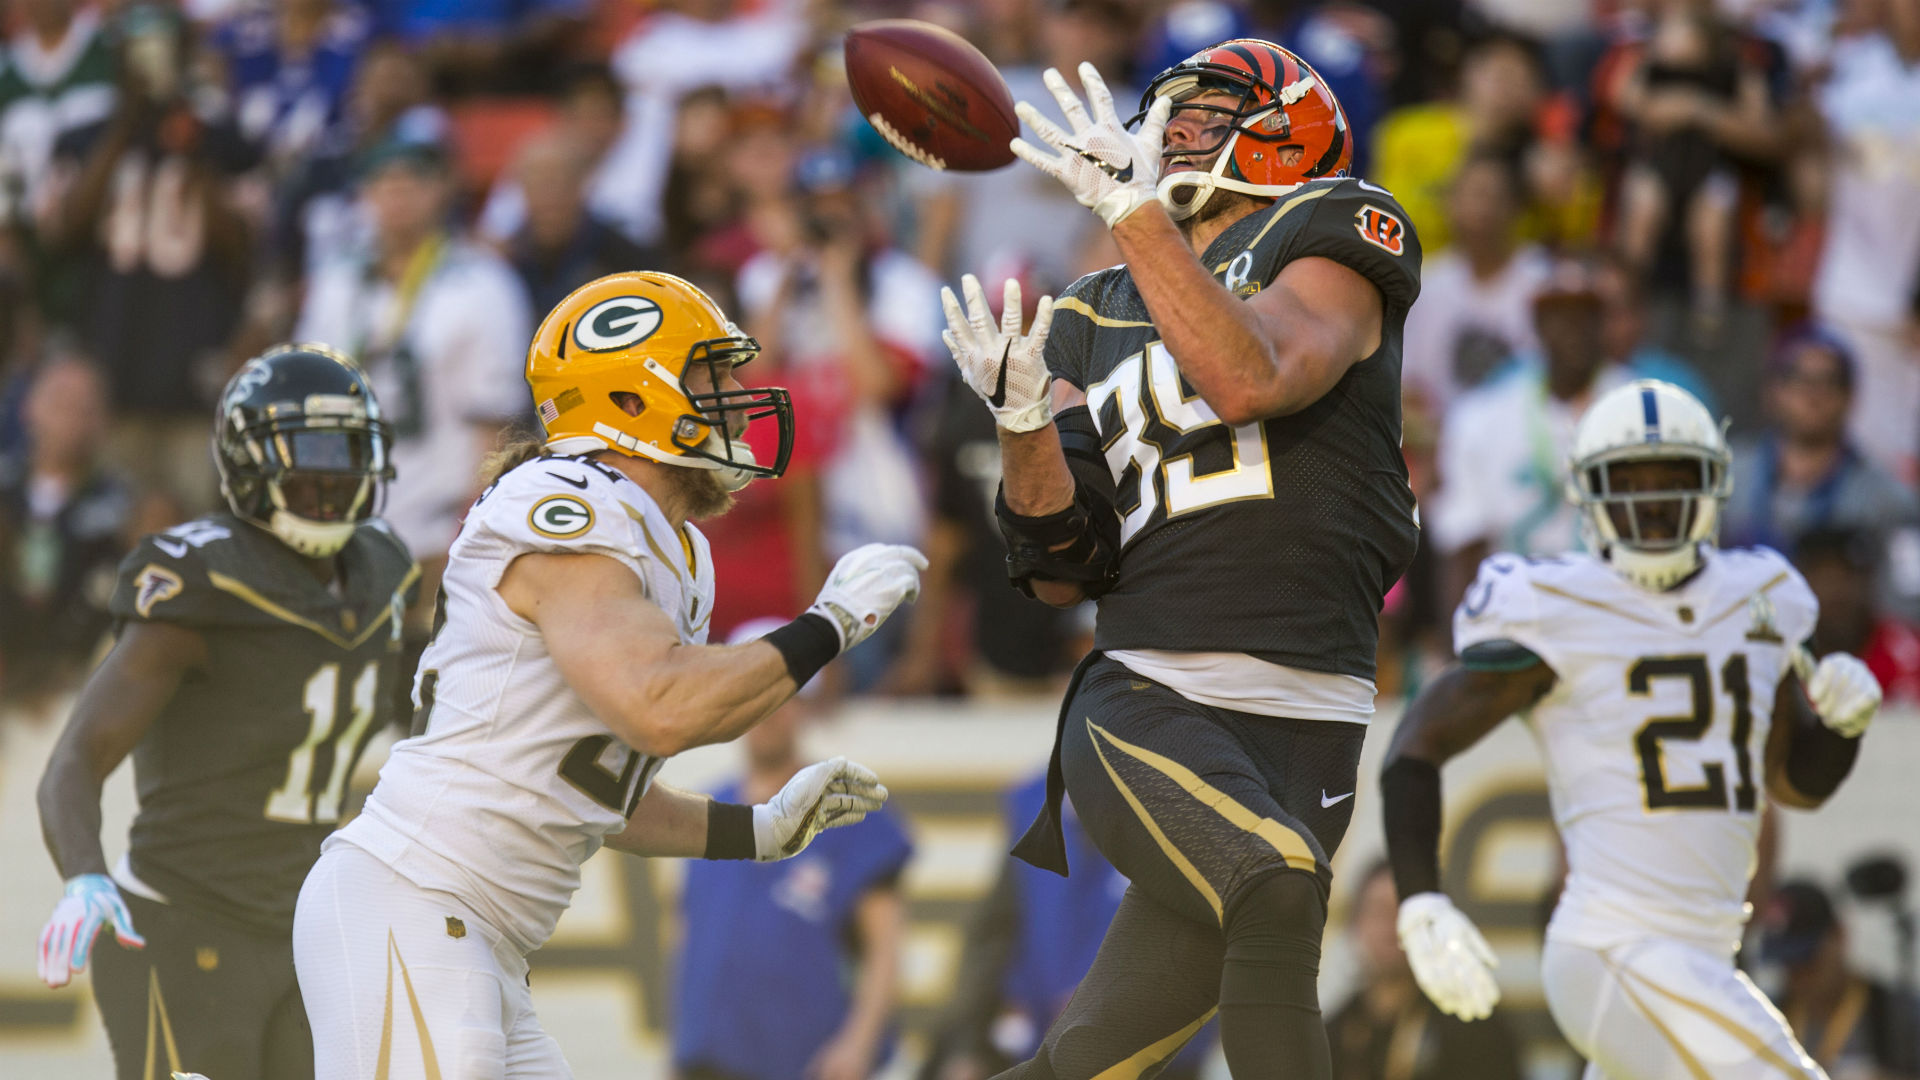 Bengals TE Tyler Eifert not going to Pro Bowl if selected